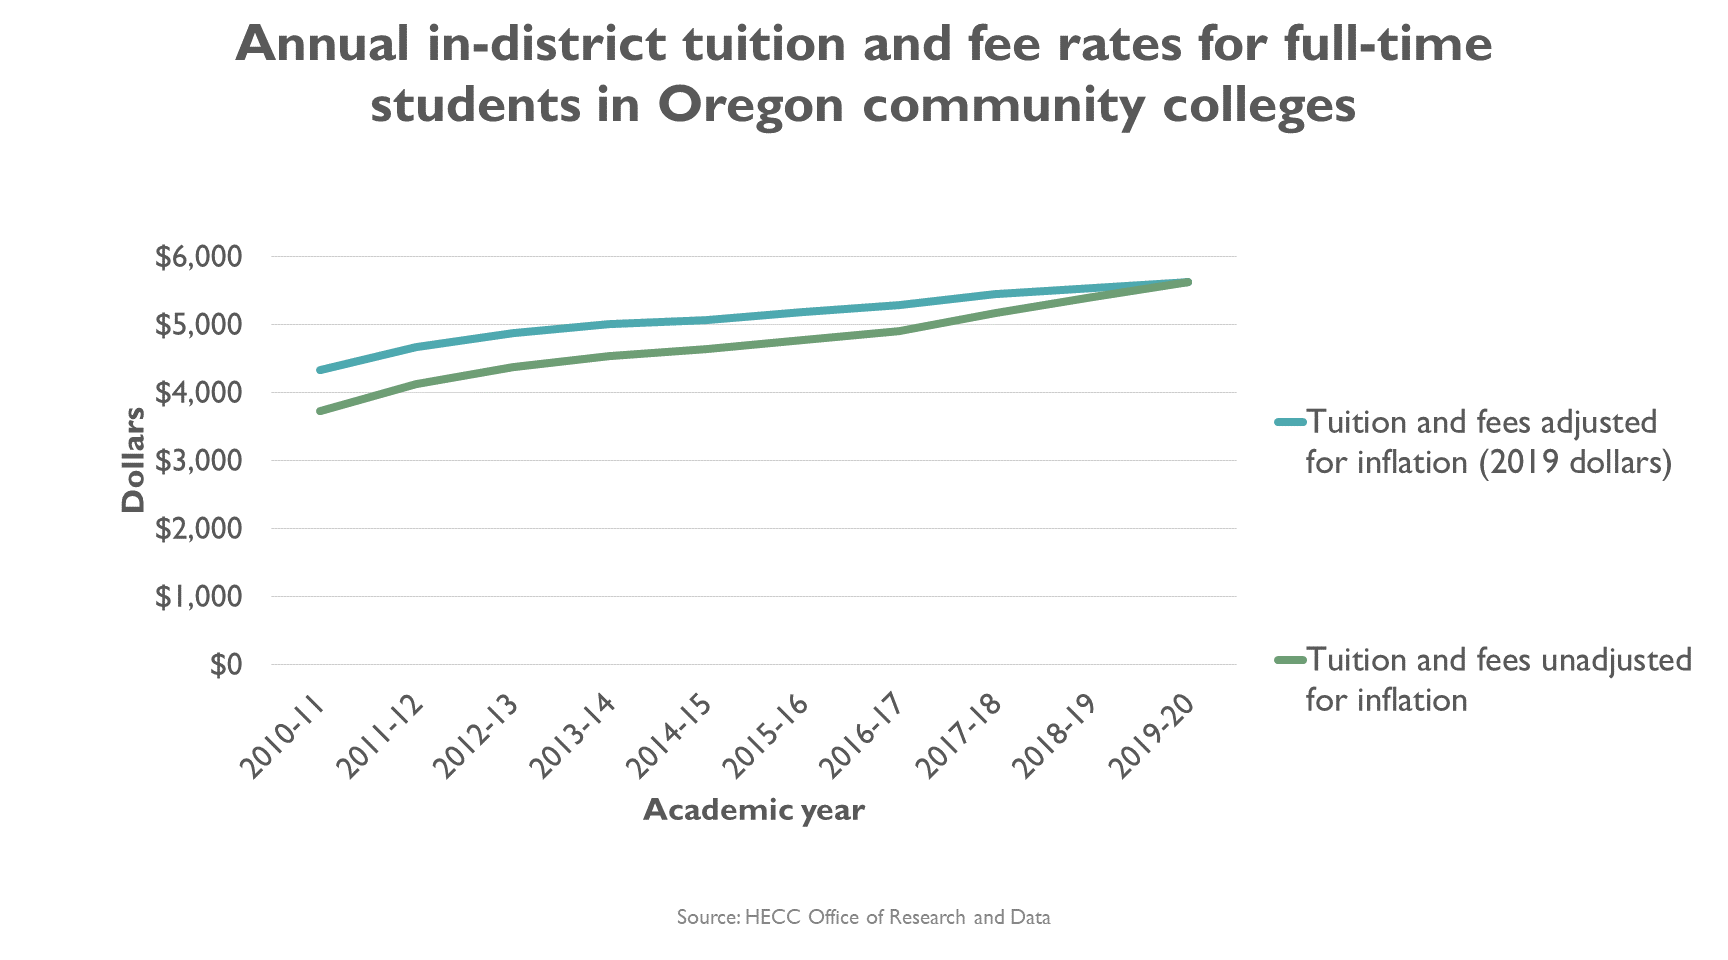 Graphic, line graph, Annual in-district tuition and fee rates for full-time students in Oregon community colleges over time